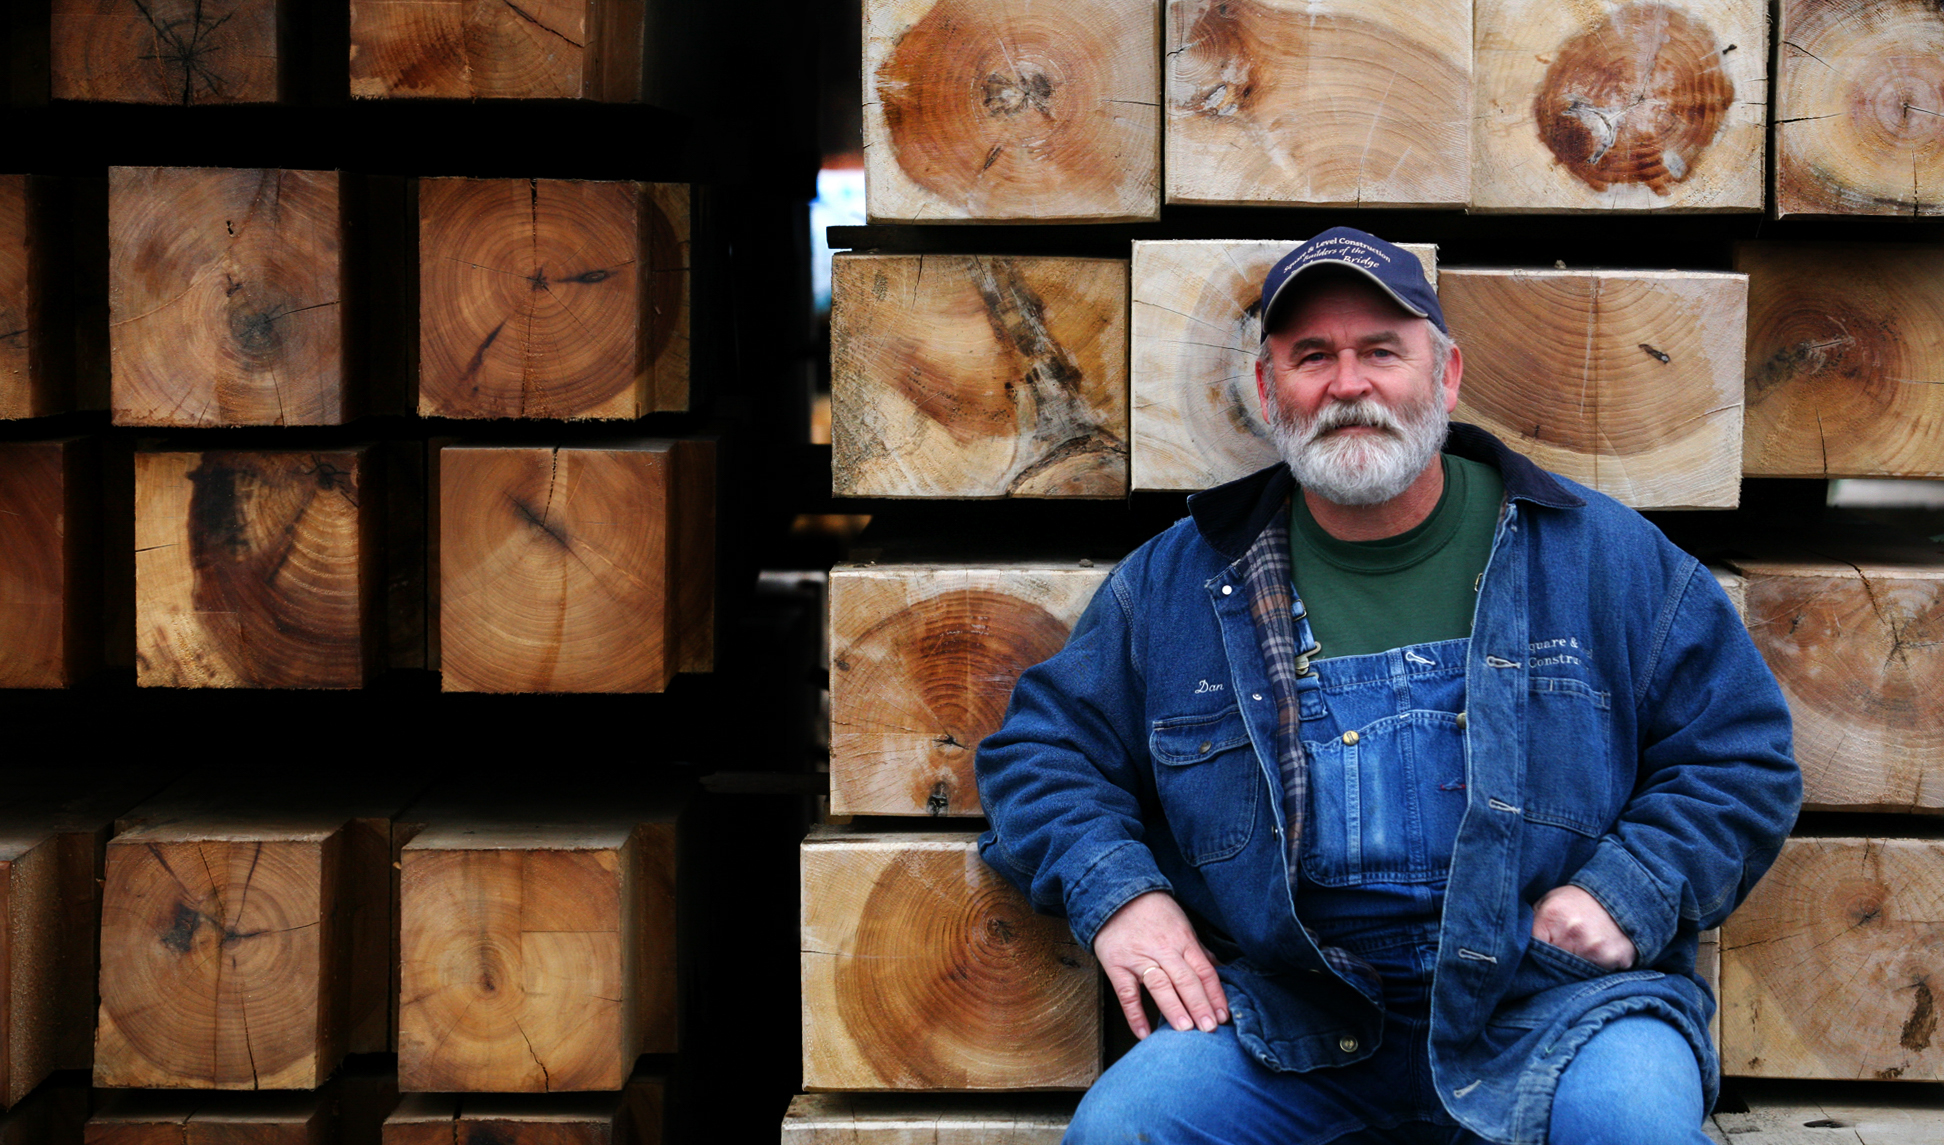 Dan Collom, owner of Square and Level Construction restored the Moscow covered bridge after a tornado flattened it.